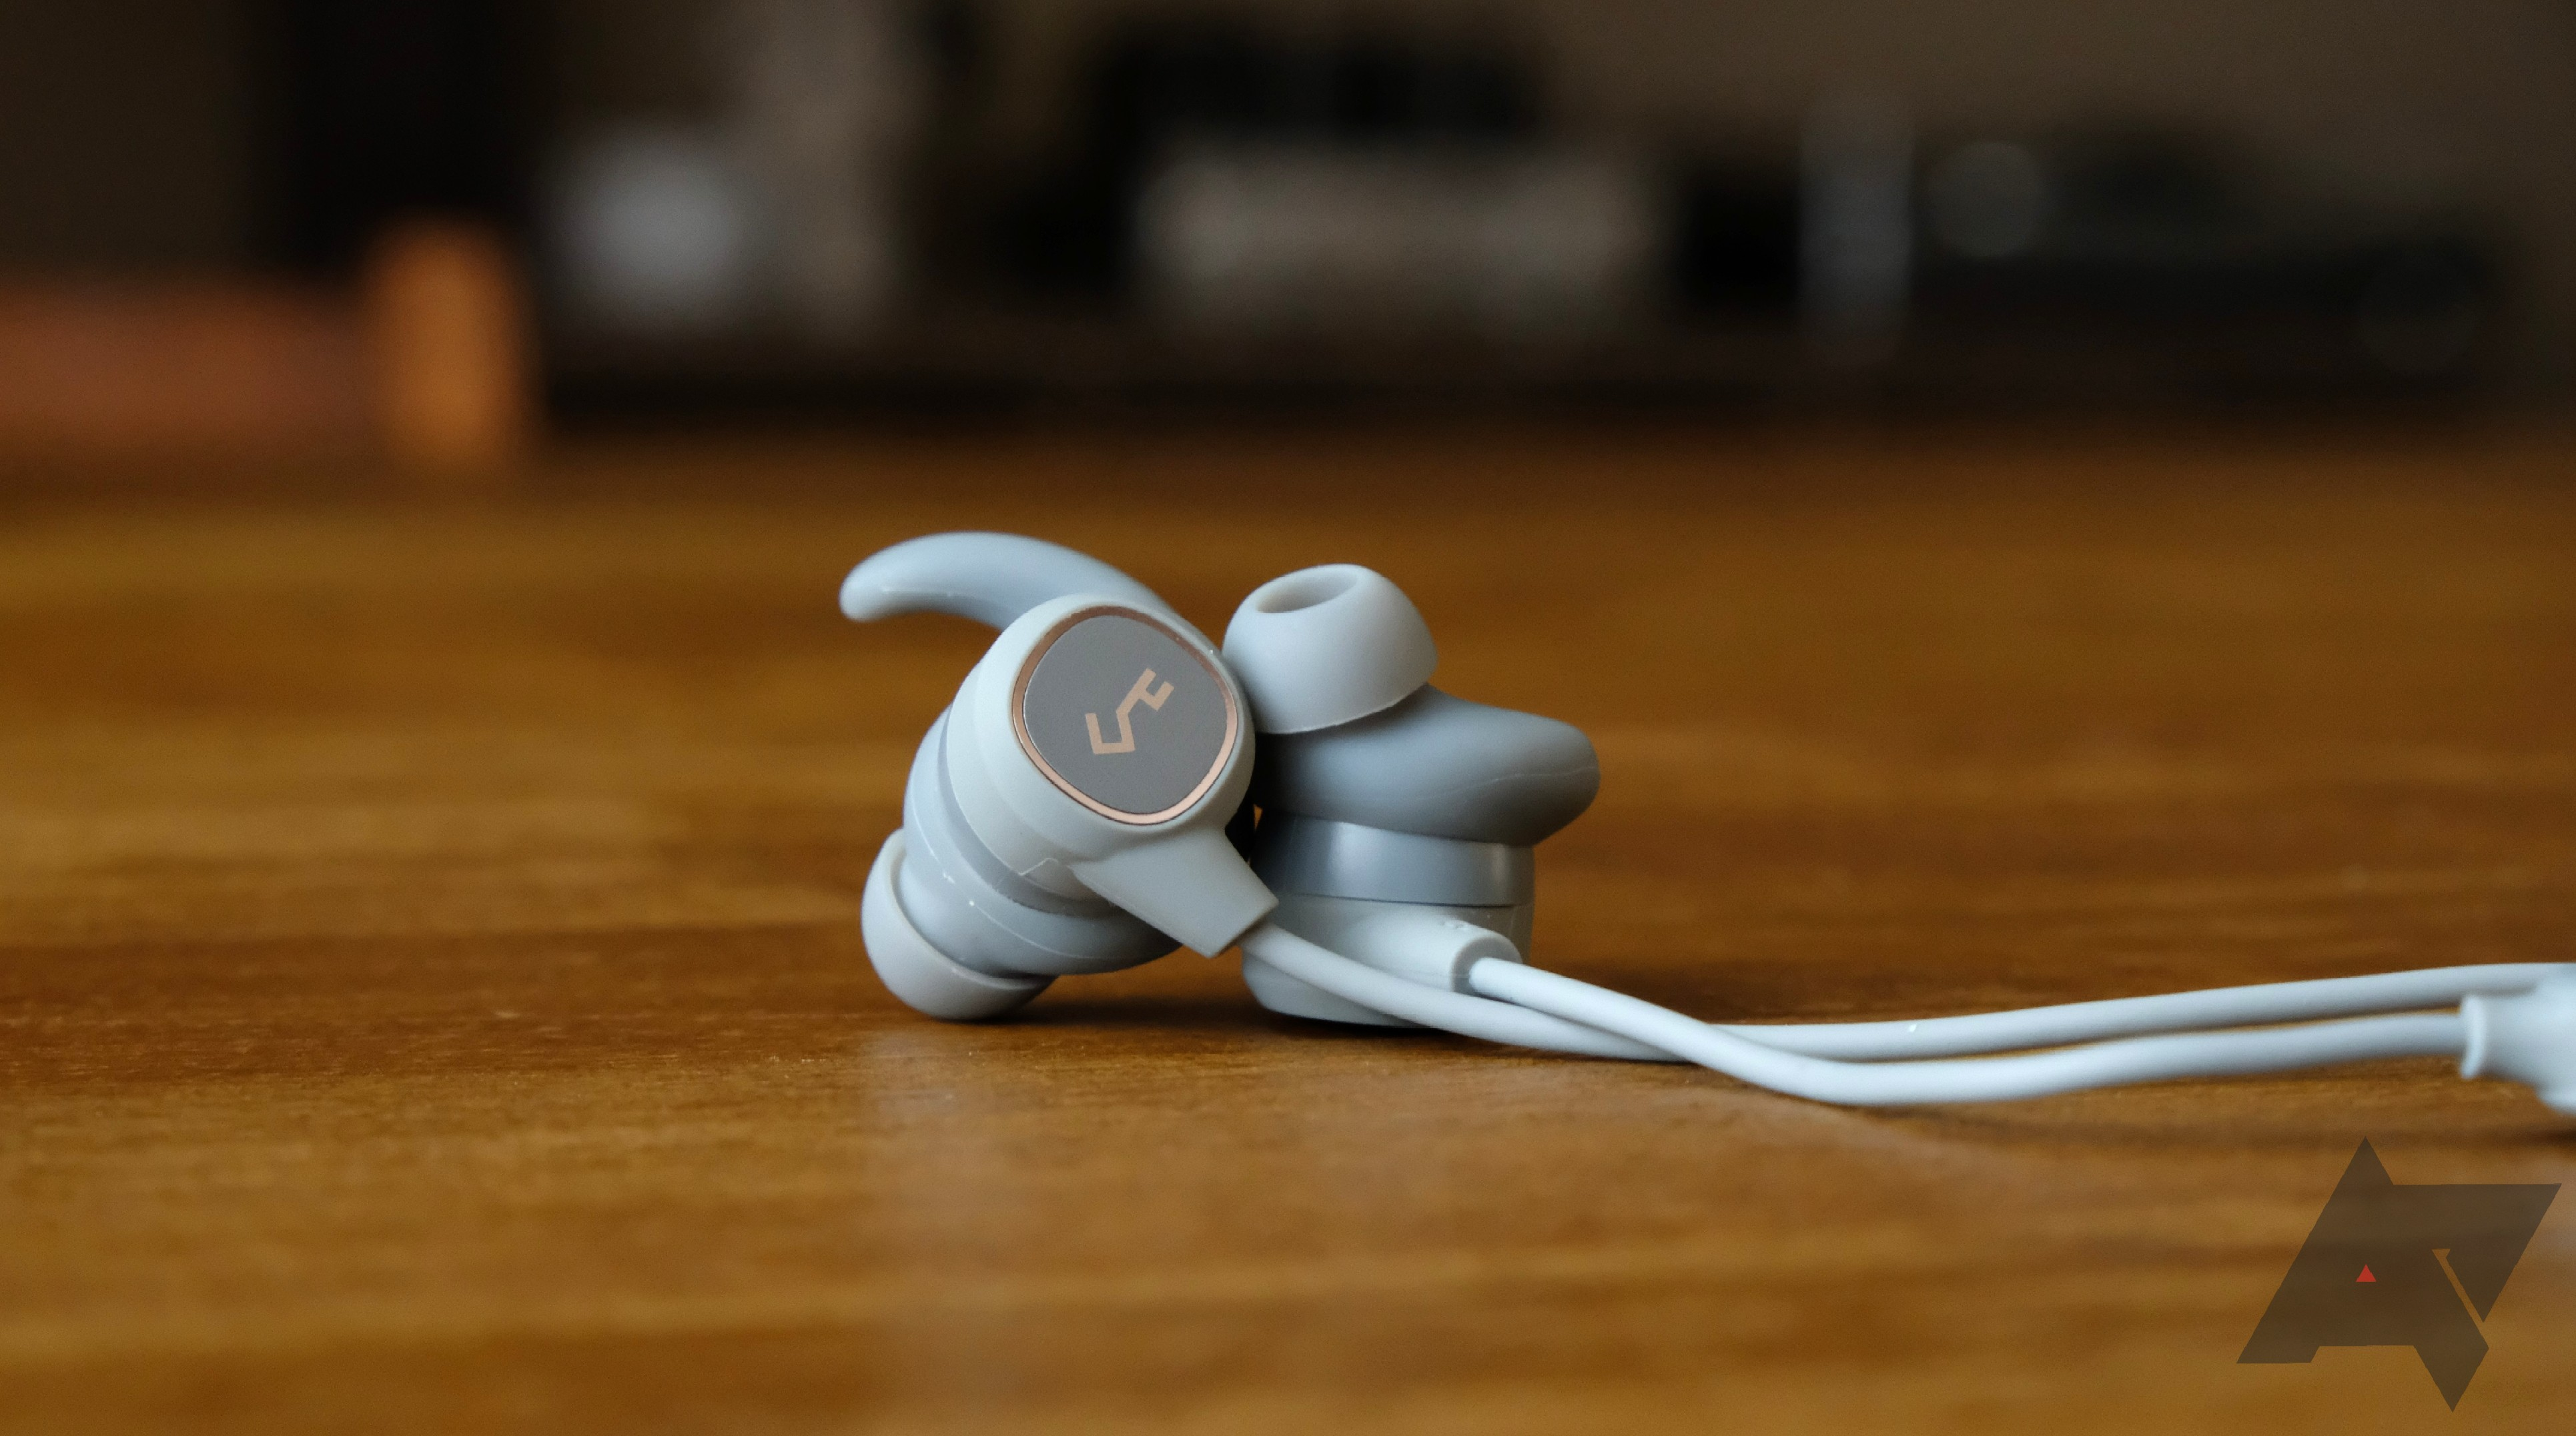 b5231f54668 ... manufacturers seem reluctant to adopt the USB-C charging port found on  most new phones, tablets, and even laptops. Otherwise exciting earbuds like  the ...